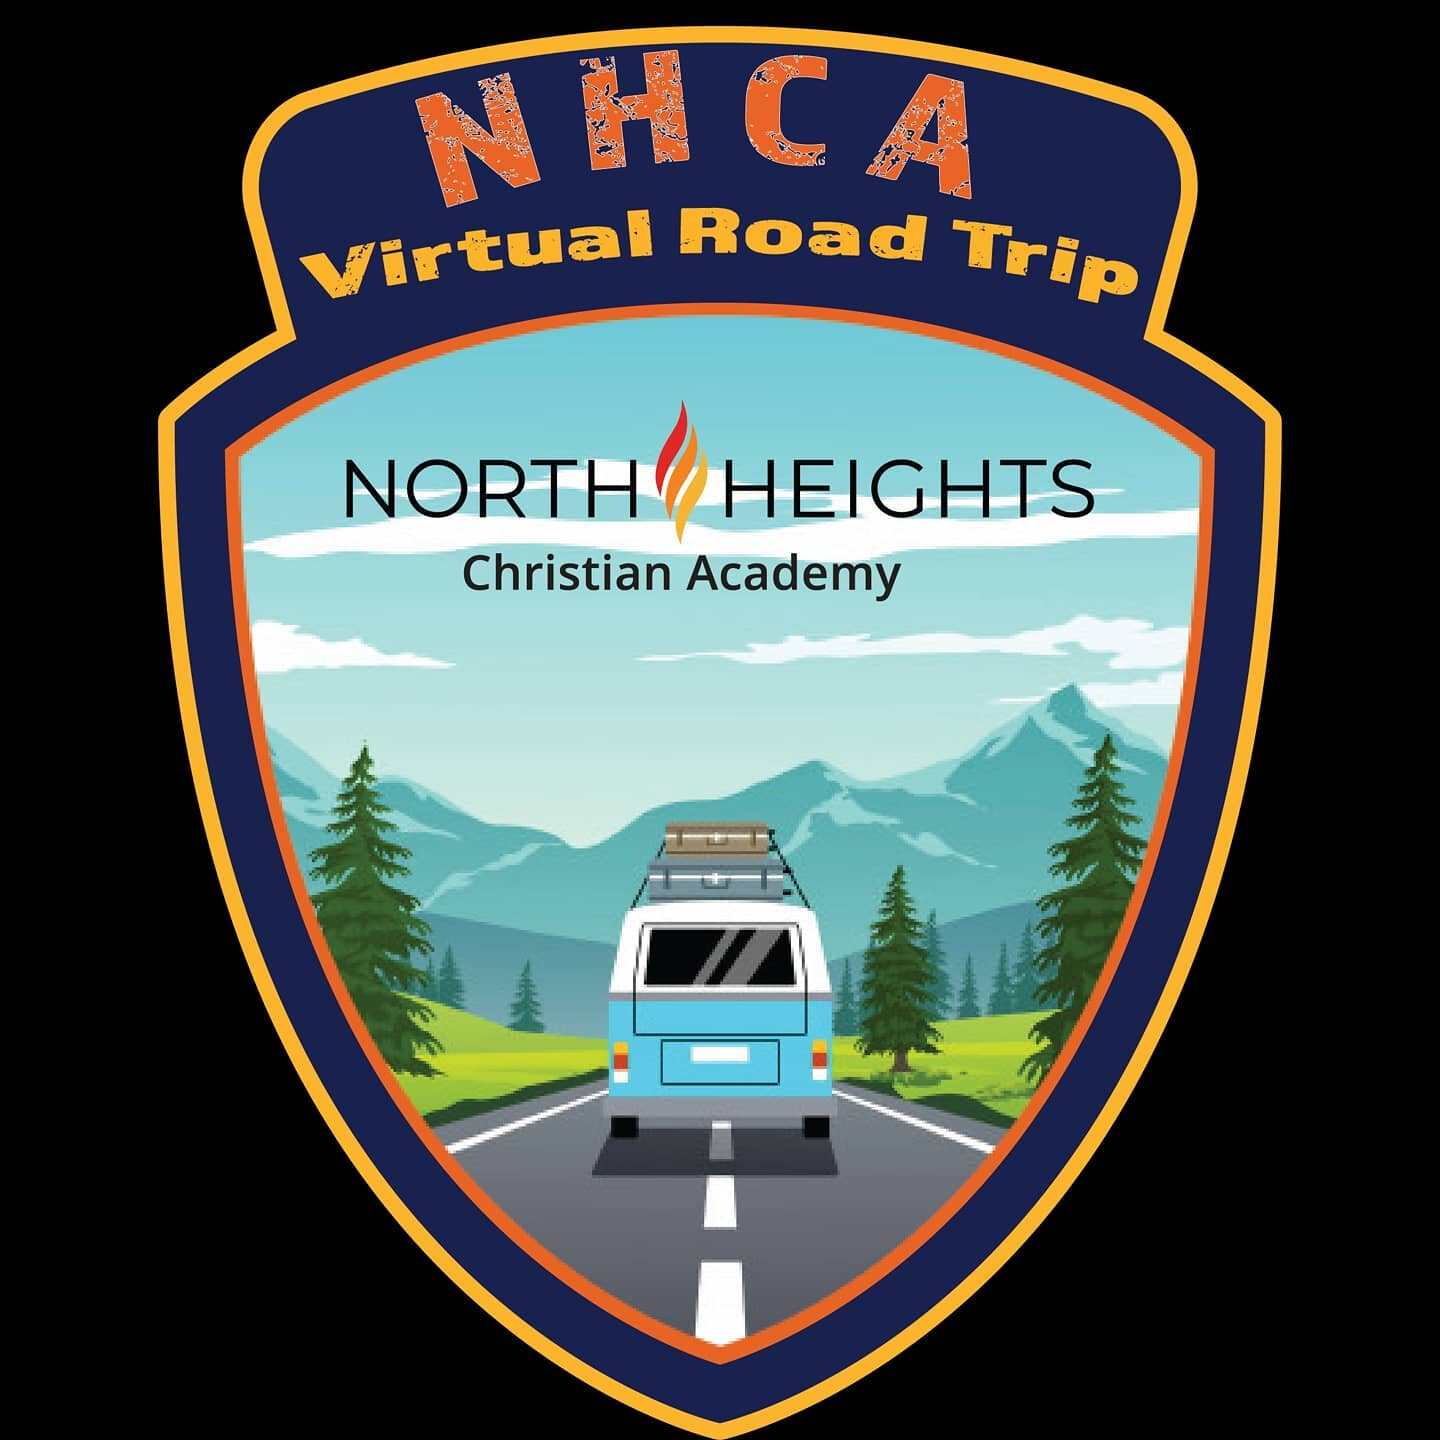 NHCA Virtual Cross-Country Road Trip